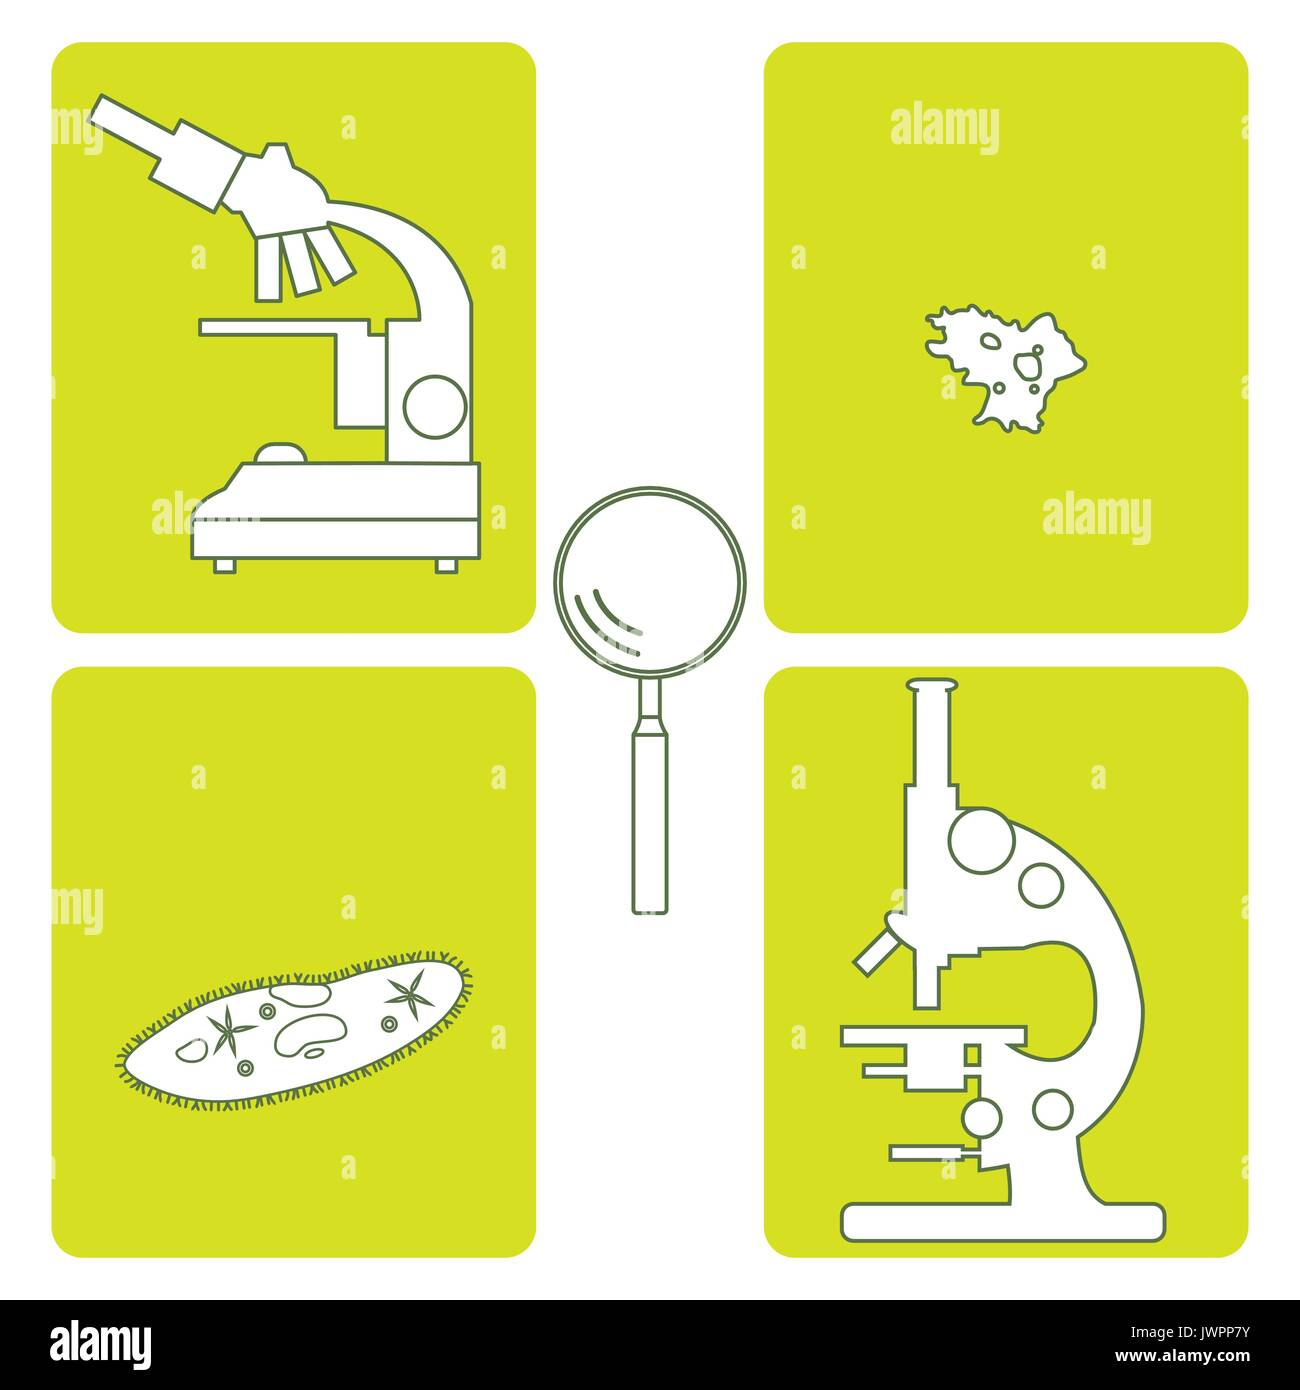 Stylized icons of microscopes, magnifier, amoeba, ciliate-slipper. Magnifying device sign. Laboratory equipment symbol. - Stock Vector